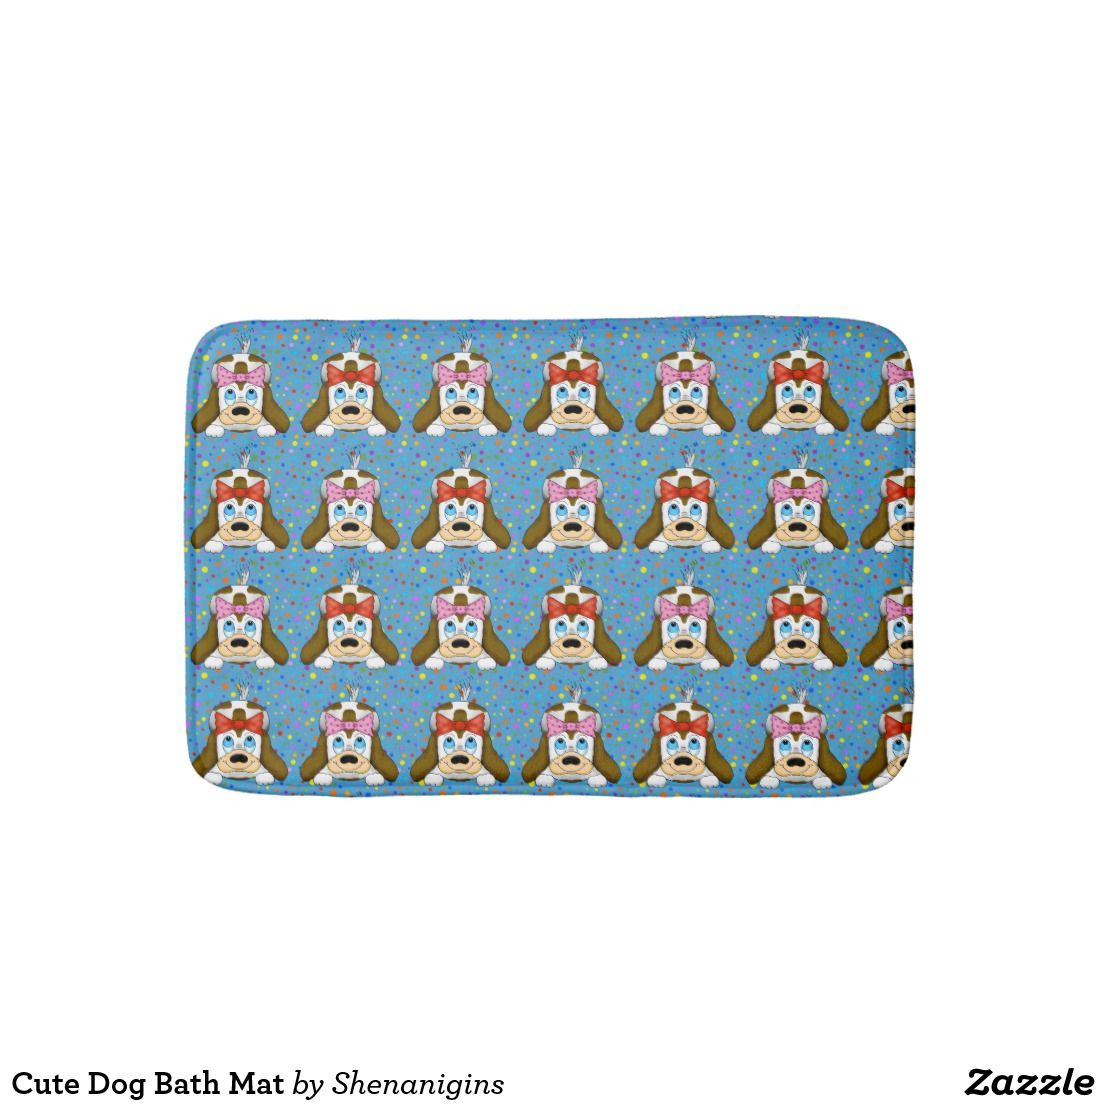 Cute Dog Bath Mat We Also Have A Matching Shower Curtain Towel